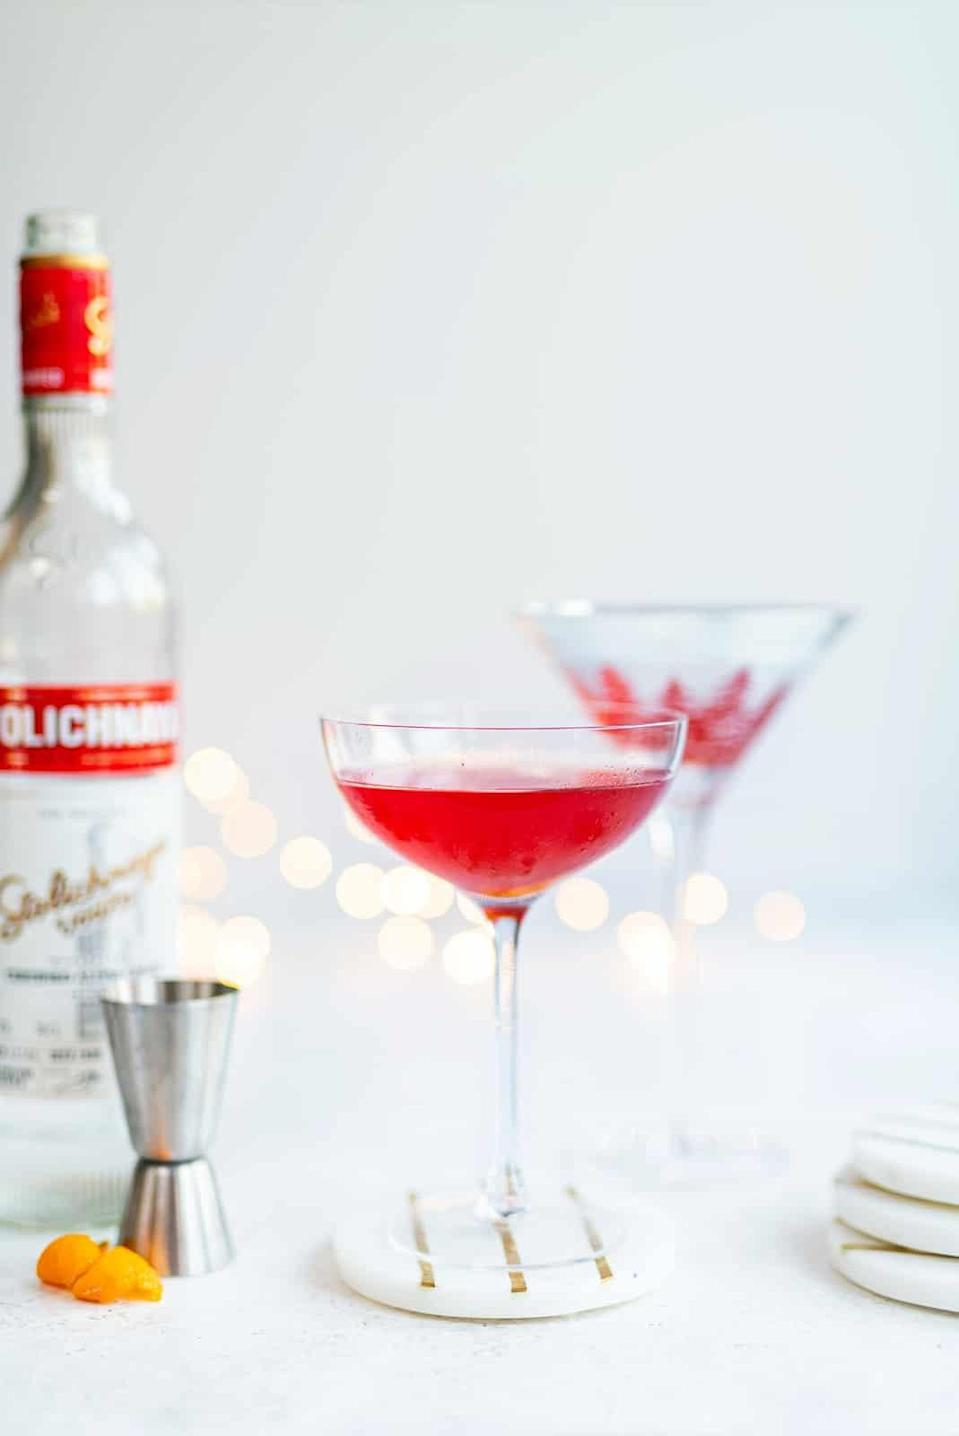 """<p>Classic, classy, and <strong>Sex and the City</strong>-approved, cosmopolitans are the chic drink of your dreams. The mix of vodka, orange liqueur, cranberry, and lime juice will leave your head in the clouds.</p> <p><strong>Get the recipe</strong>: <a href=""""https://www.popsugar.com/buy?url=https%3A%2F%2Fwww.supergoldenbakes.com%2Fcocktail-friday-blood-orange%2F&p_name=cosmopolitan&retailer=supergoldenbakes.com&evar1=yum%3Aus&evar9=47471653&evar98=https%3A%2F%2Fwww.popsugar.com%2Ffood%2Fphoto-gallery%2F47471653%2Fimage%2F47474526%2FMichigan-Cosmopolitan&list1=cocktails%2Cdrinks%2Calcohol%2Crecipes&prop13=api&pdata=1"""" class=""""link rapid-noclick-resp"""" rel=""""nofollow noopener"""" target=""""_blank"""" data-ylk=""""slk:cosmopolitan"""">cosmopolitan</a></p>"""